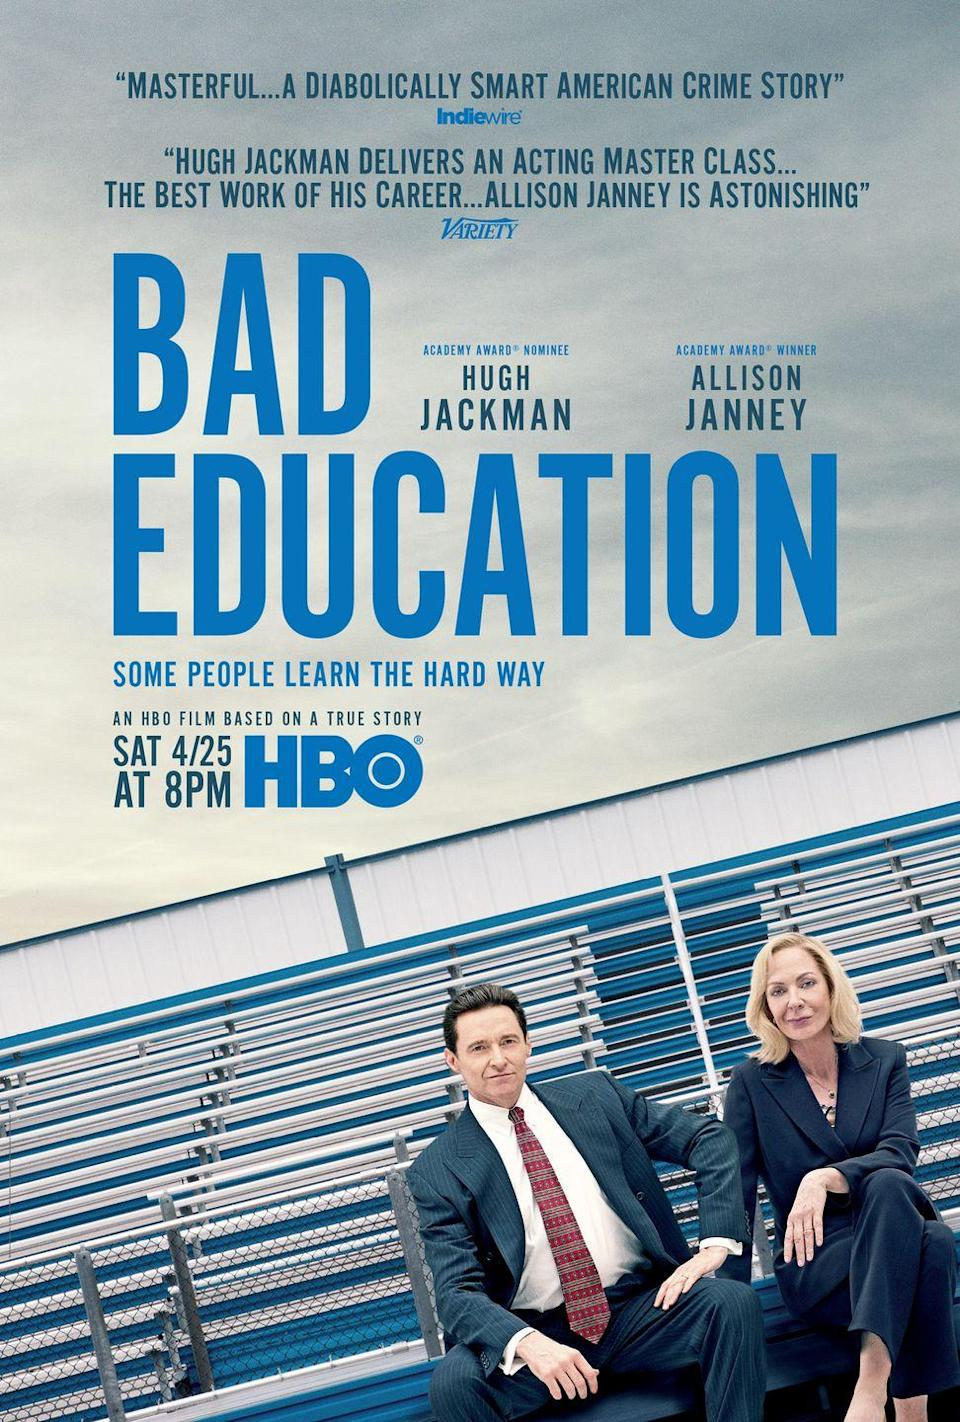 """<p>Using cheery smiles and go-getter glares to conceal profound depths of resentment, ambition and greed, Hugh Jackman gives the performance of his career as Roslyn, Long Island <a href=""""https://www.esquire.com/entertainment/movies/a32268352/bad-education-hbo-true-story-frank-tassone-now/"""" rel=""""nofollow noopener"""" target=""""_blank"""" data-ylk=""""slk:public school superintendent Dr. Frank Tassone in Bad Education"""" class=""""link rapid-noclick-resp"""">public school superintendent Dr. Frank Tassone in <em>Bad Education</em></a>. A dramatic account of the historic embezzlement scandal that engulfed Tassone and his colleagues – most notably, assistant superintendent Pam Gluckin (Allison Janney) – Cory Finley's film (based on Robert Kolker's <em>New York Magazine</em> article) is a ruthlessly efficient and even-keeled affair about the intense pressures of suburban academia, where educational-ranking achievements and college acceptance rates are intimately intertwined with real-estate prices. The director lays out the myriad forces at play in this ostensibly picture-perfect milieu in exacting detail, and his preference for longer takes means that the focus remains squarely on his performers. That, in turn, allows the HBO feature to rest on the sturdy shoulders of Jackman, who never resorts to caricature in embodying Tassone as a discontent striver whose eagerness for validation dovetailed with his lifelong deceptiveness, to disastrous ends.<br></p><p><a class=""""link rapid-noclick-resp"""" href=""""https://play.hbogo.com/feature/urn:hbo:feature:GXk_X3QJkTJ4_wwEAAArt?reentered=true&userProfileType=liteUserProfile"""" rel=""""nofollow noopener"""" target=""""_blank"""" data-ylk=""""slk:Watch Now"""">Watch Now</a></p>"""